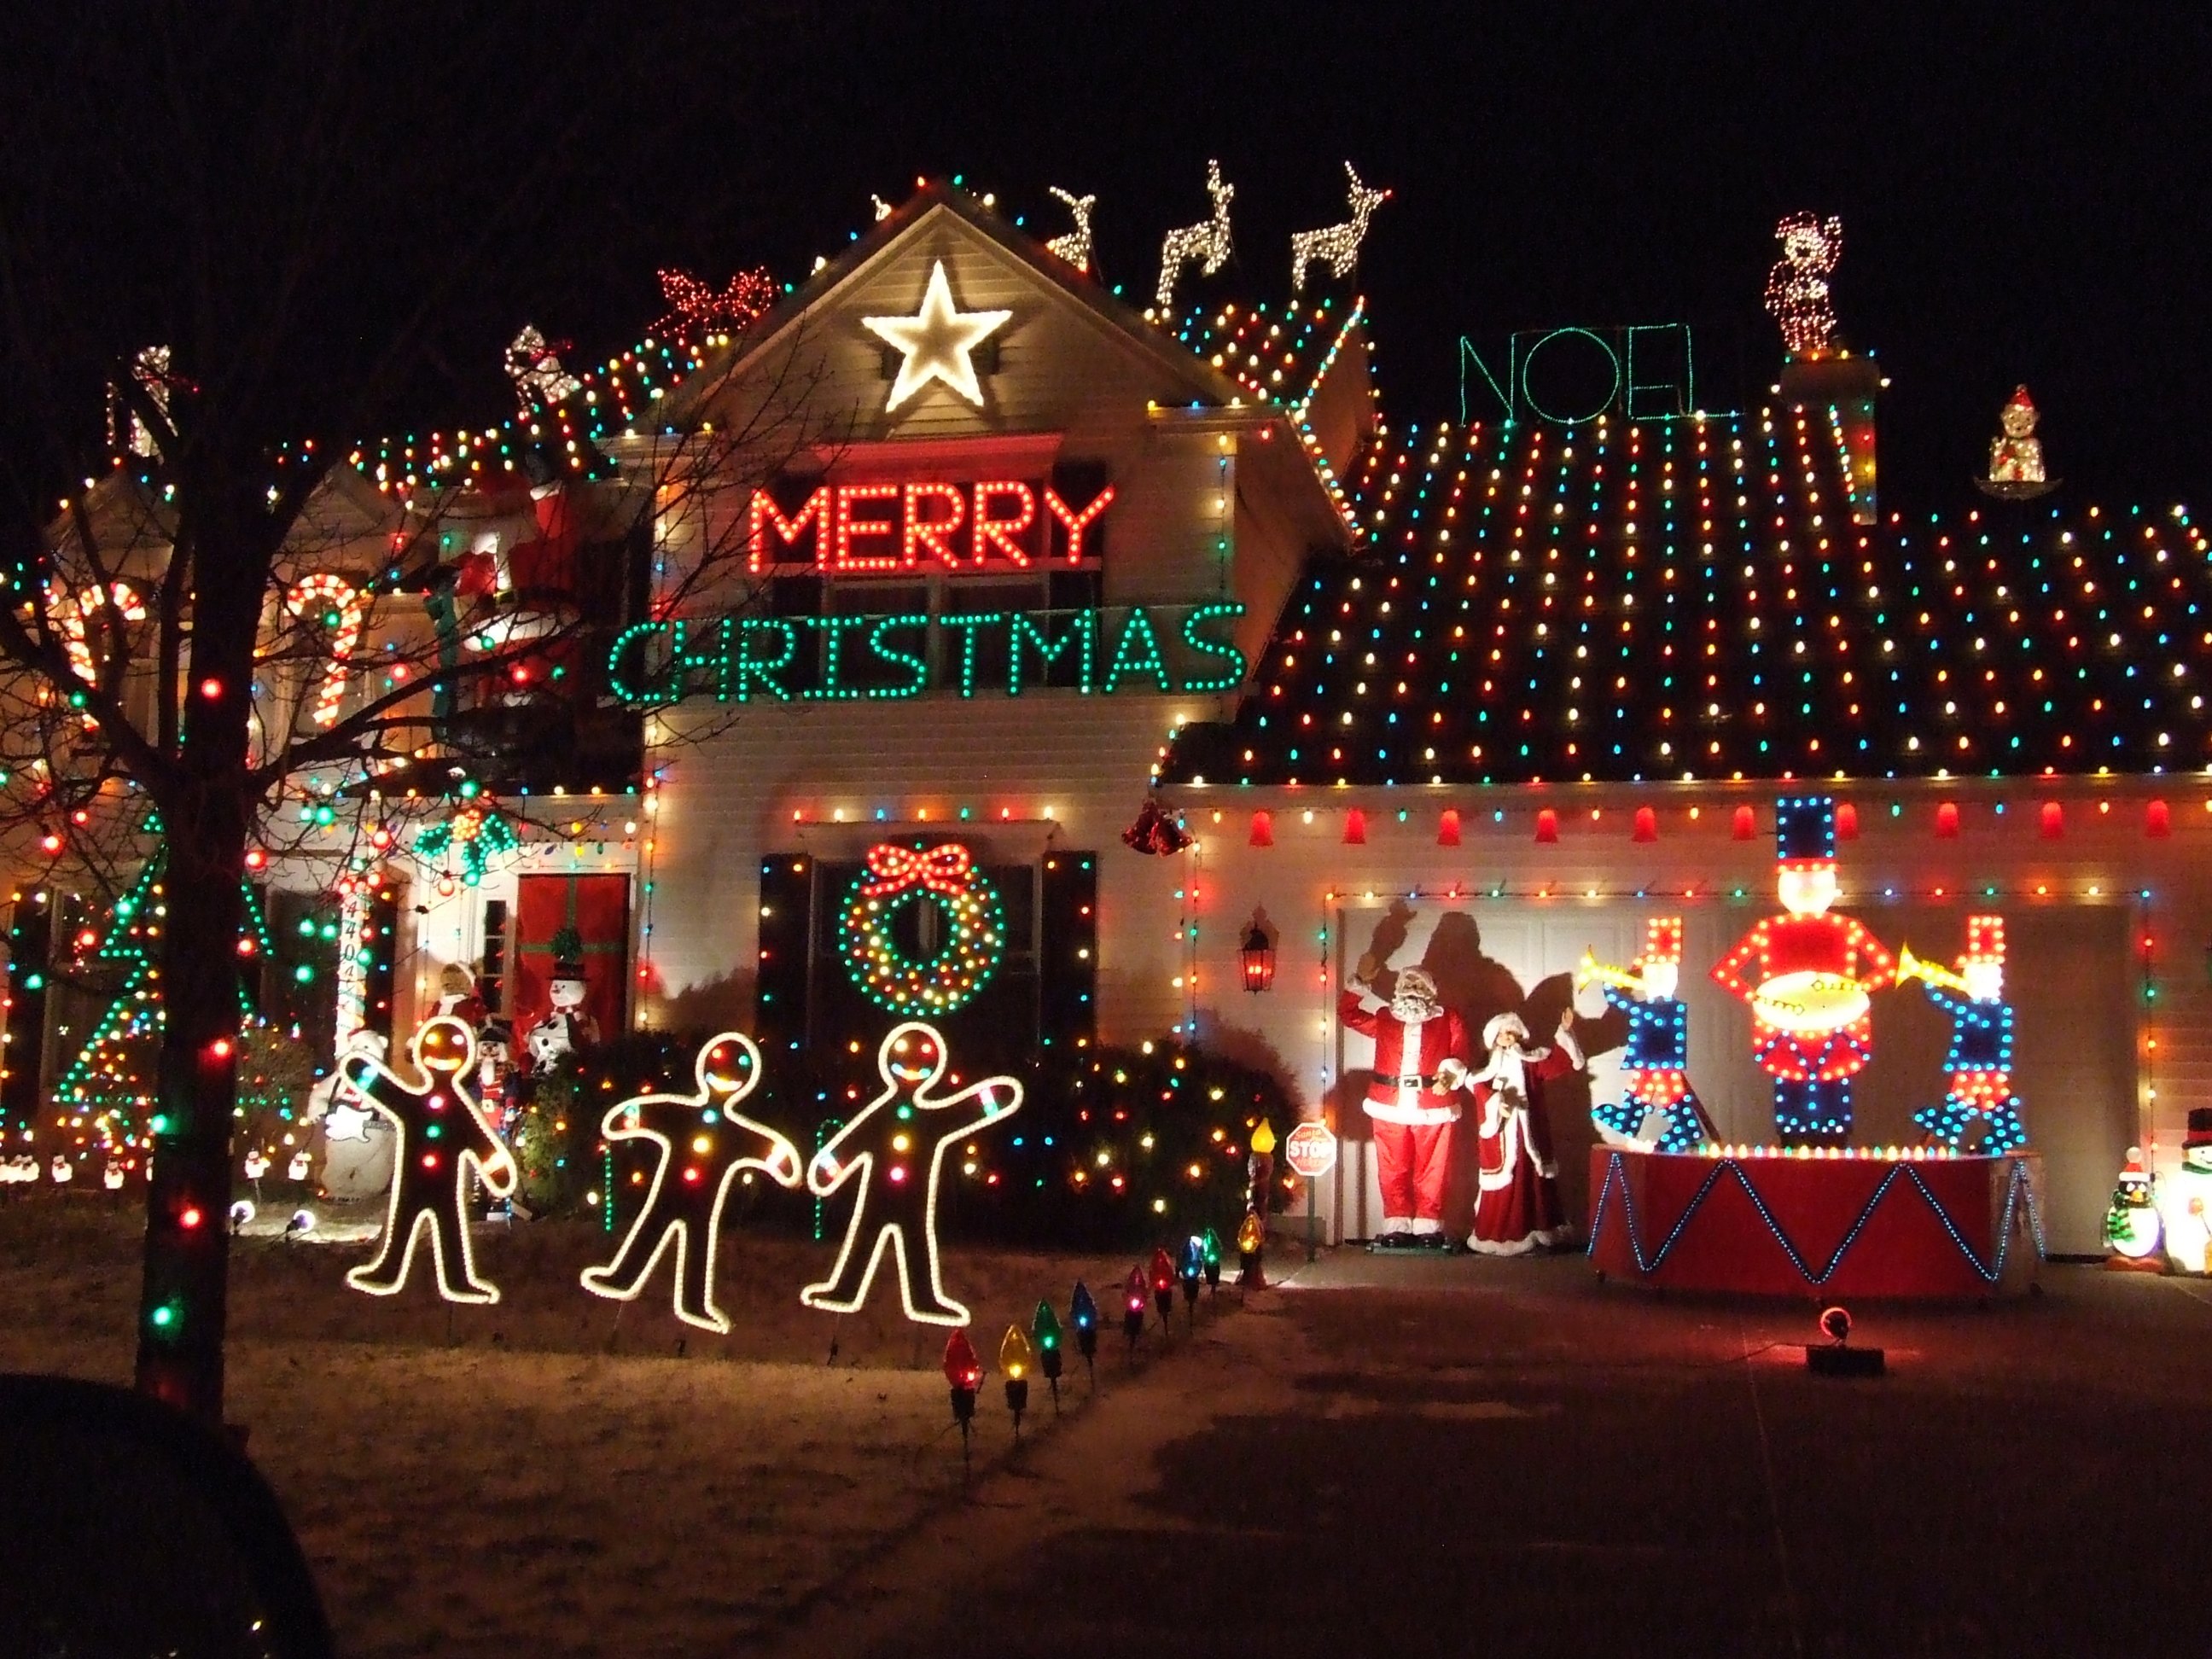 Days before Christmas: And you thought Griswold was bad | BSitko